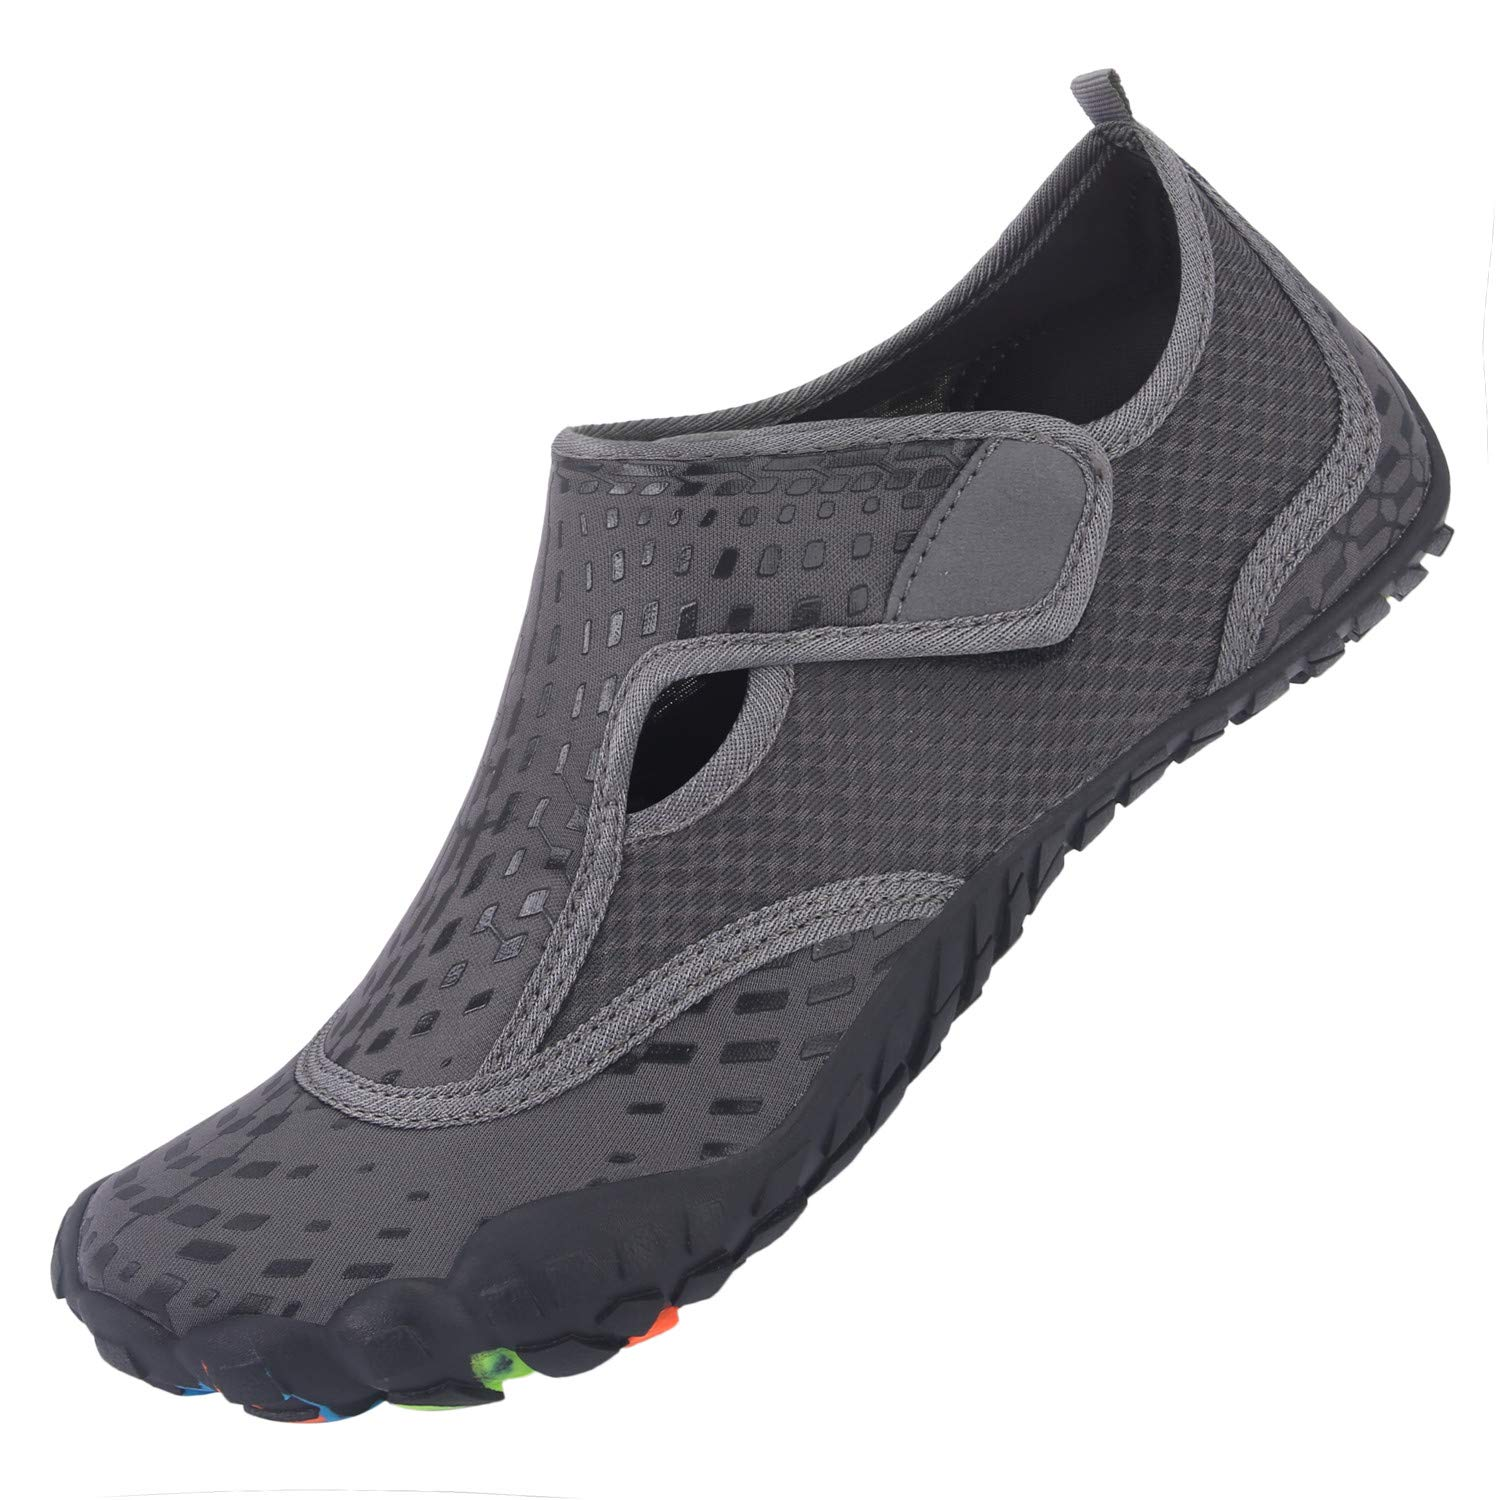 L-RUN Water Shoes for Beach Pool Swim Surf Diving Grey